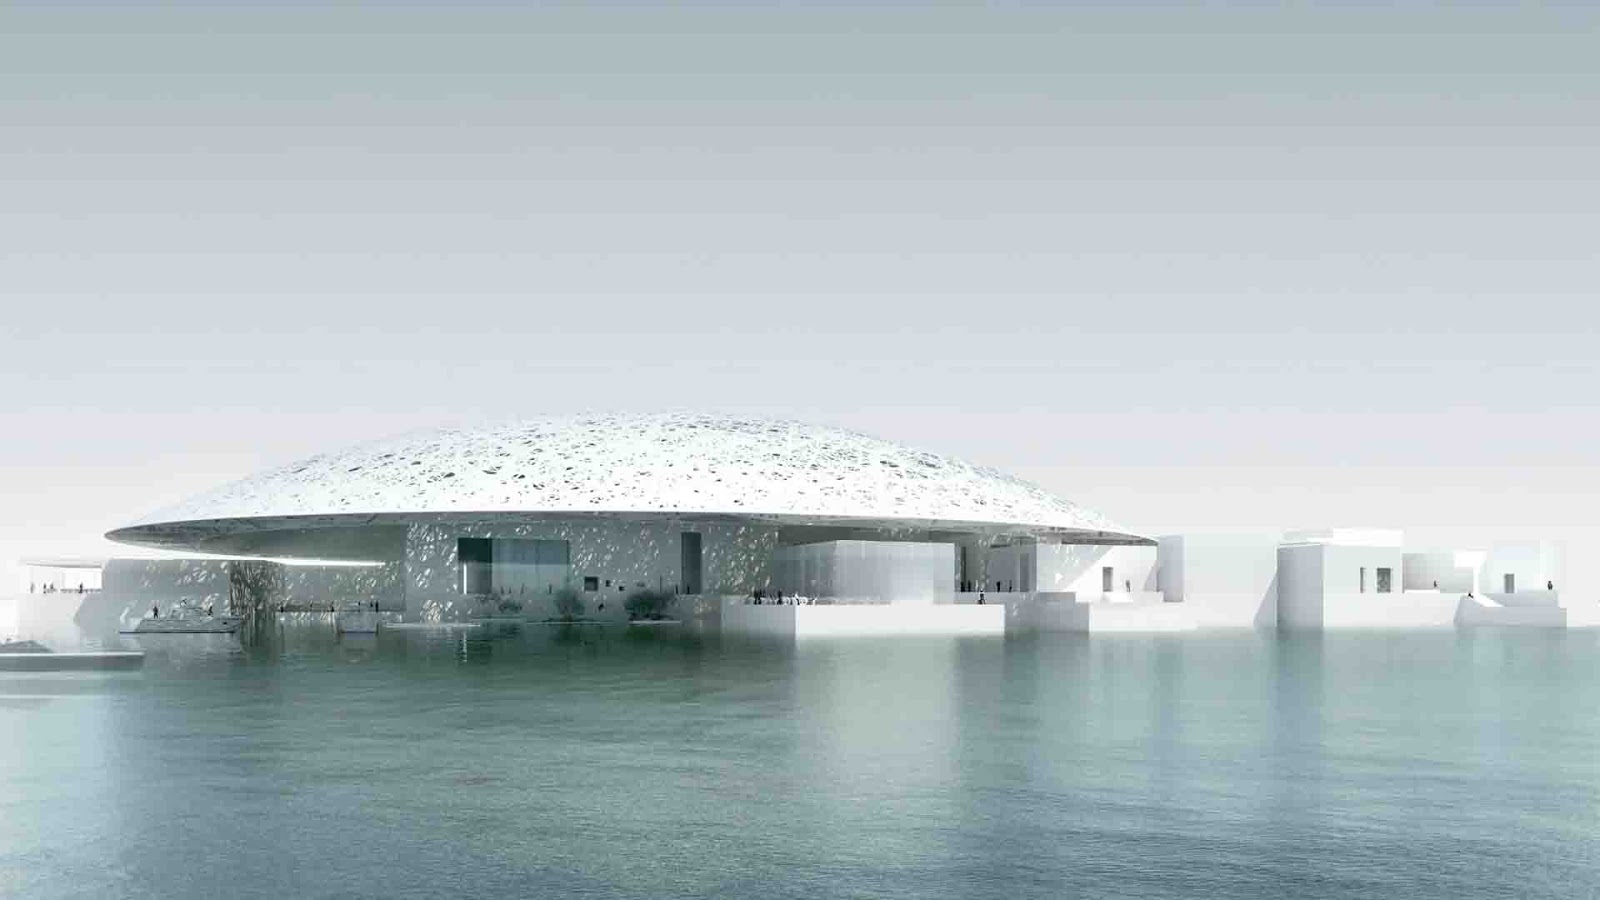 Abu dhabi hd wallpapers high definition free background for Definition architecture